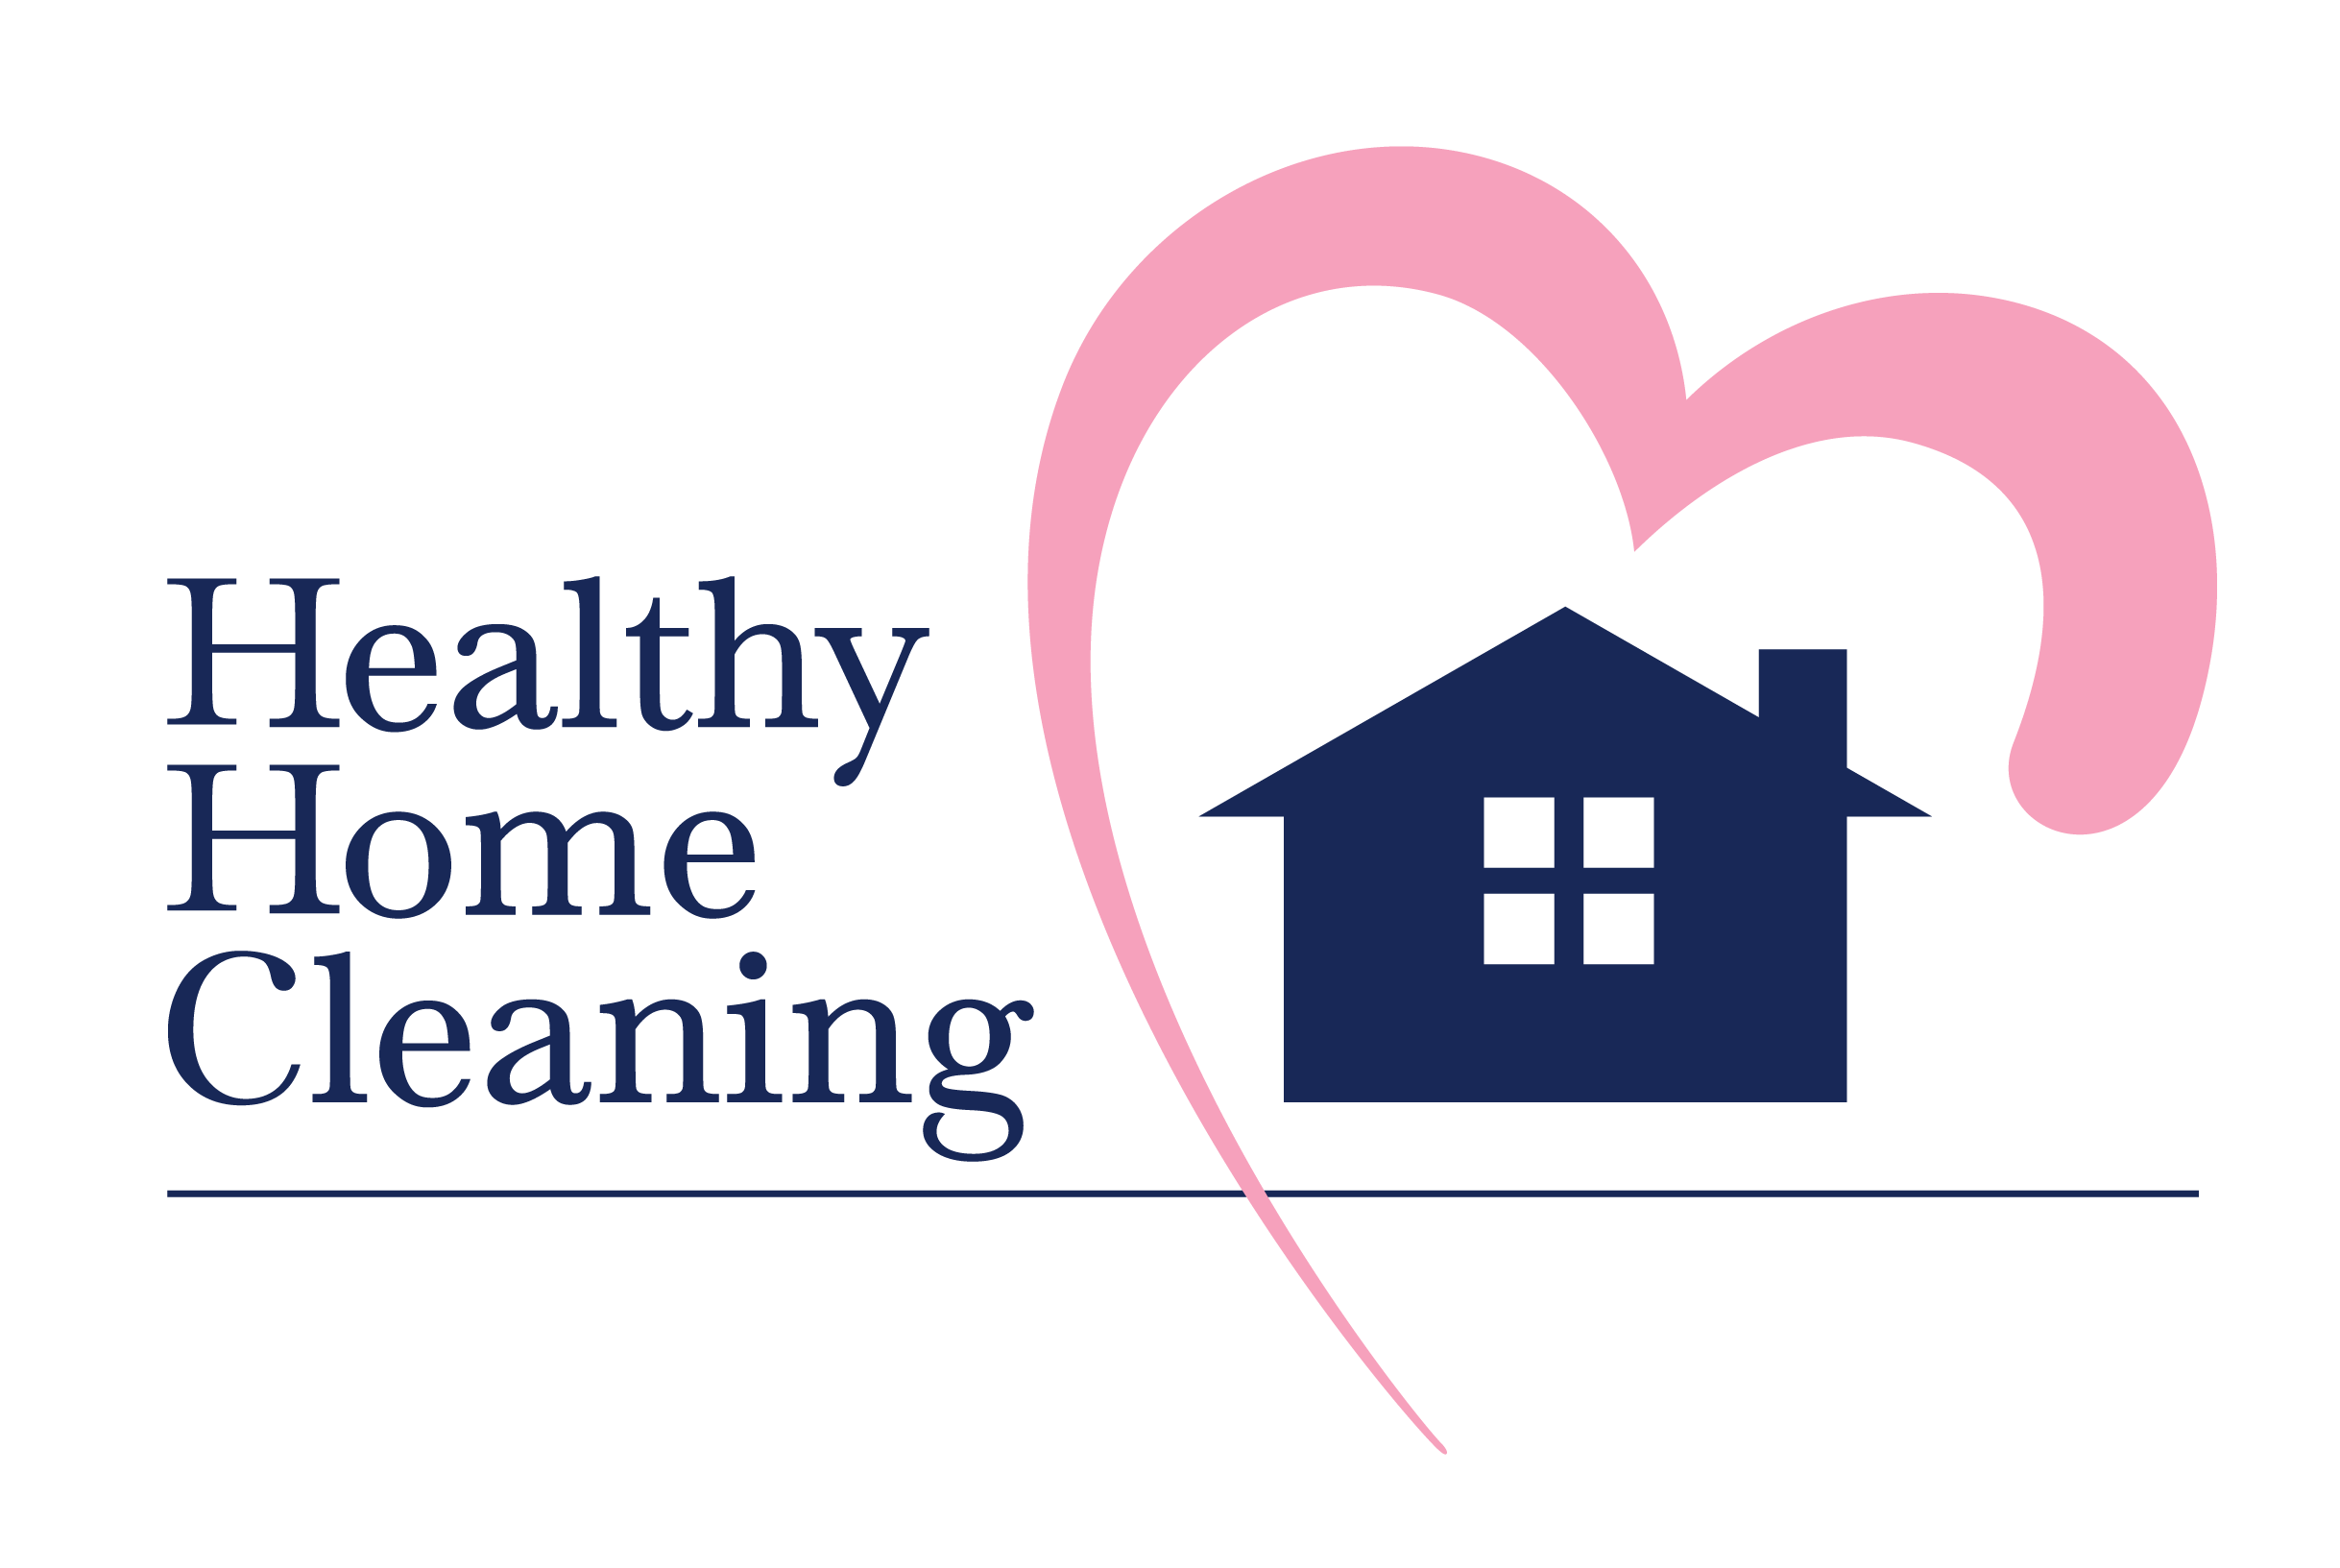 Healthy Home Cleaning Image